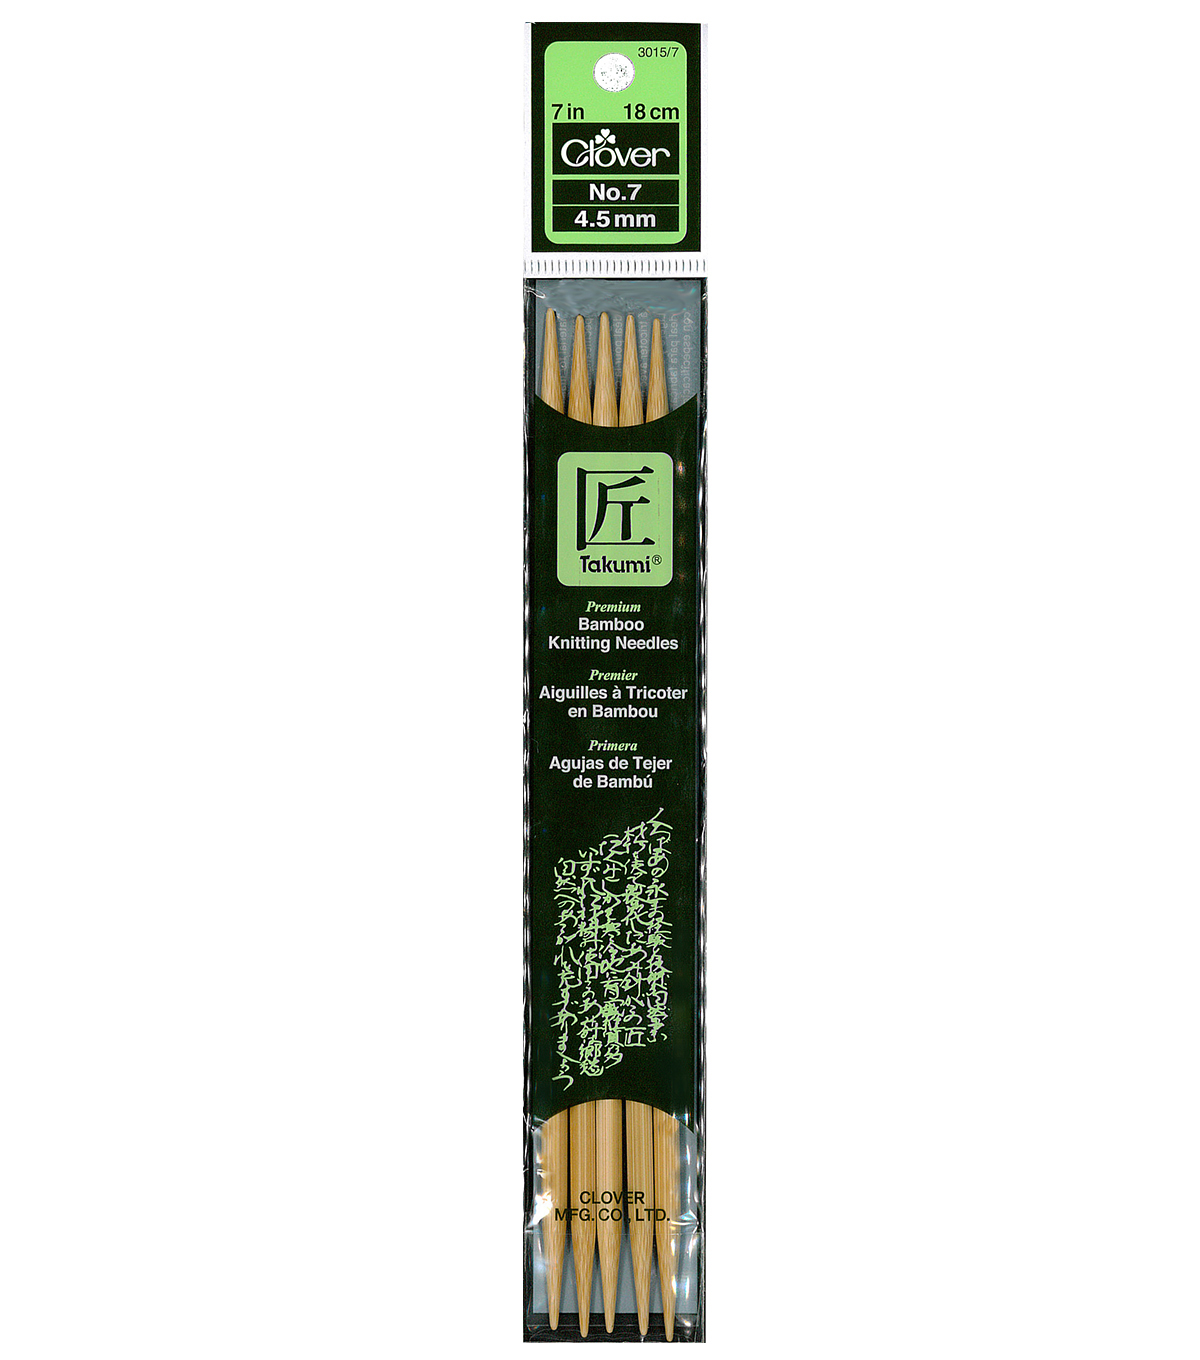 Clover Bamboo Double Point Knitting Needles 7\u0022-Size 7